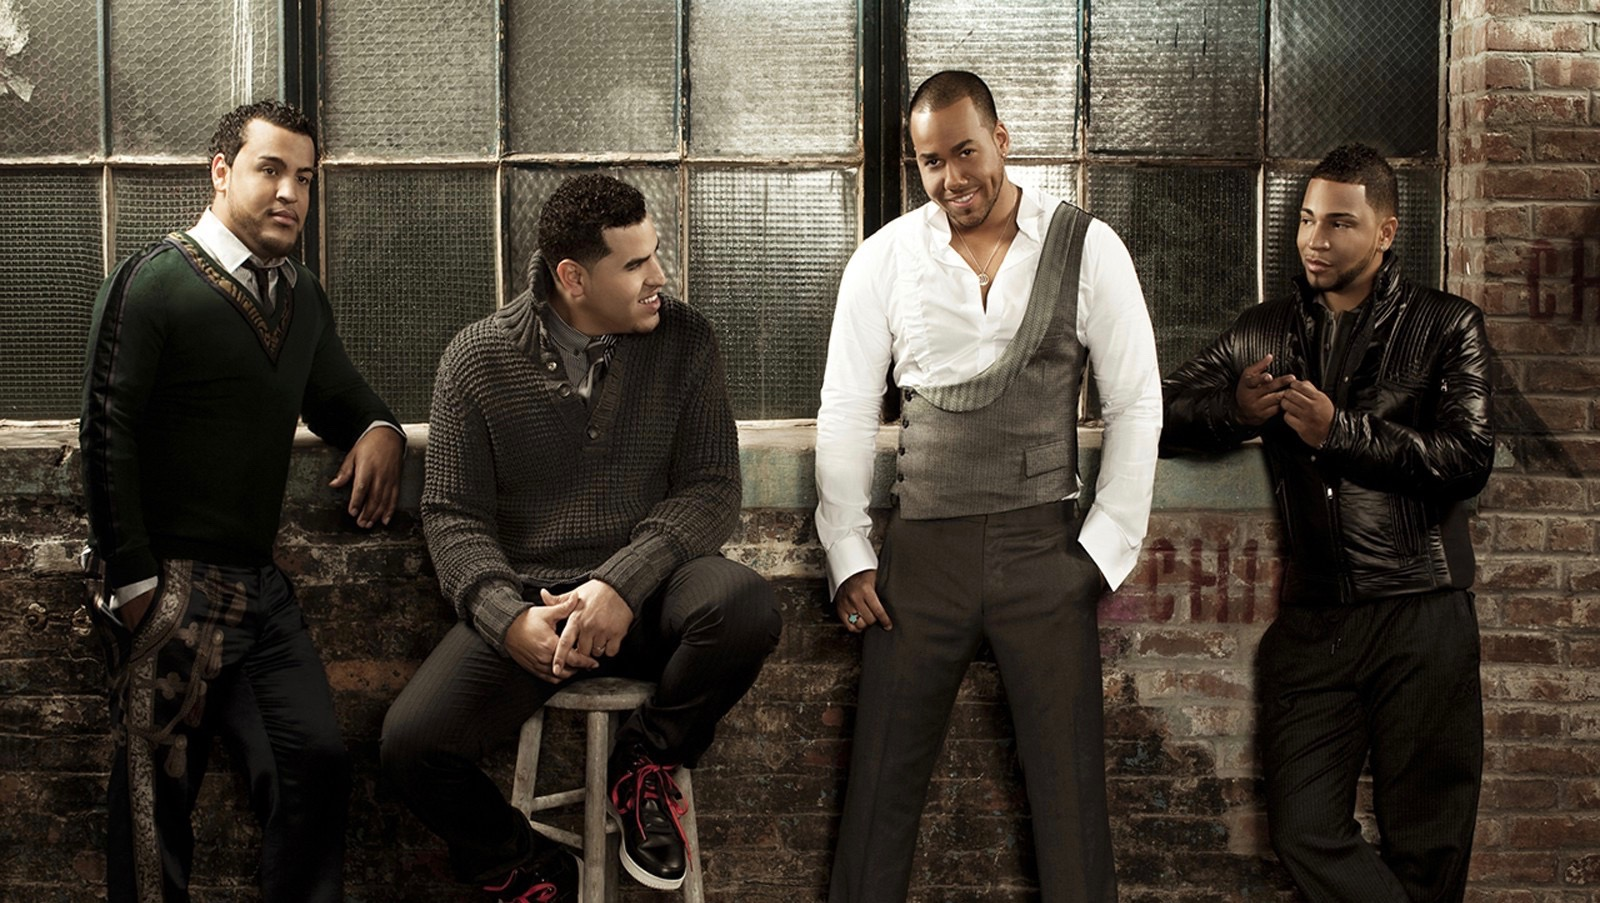 Drop Everything Because Aventura Is Reuniting In Early 2016